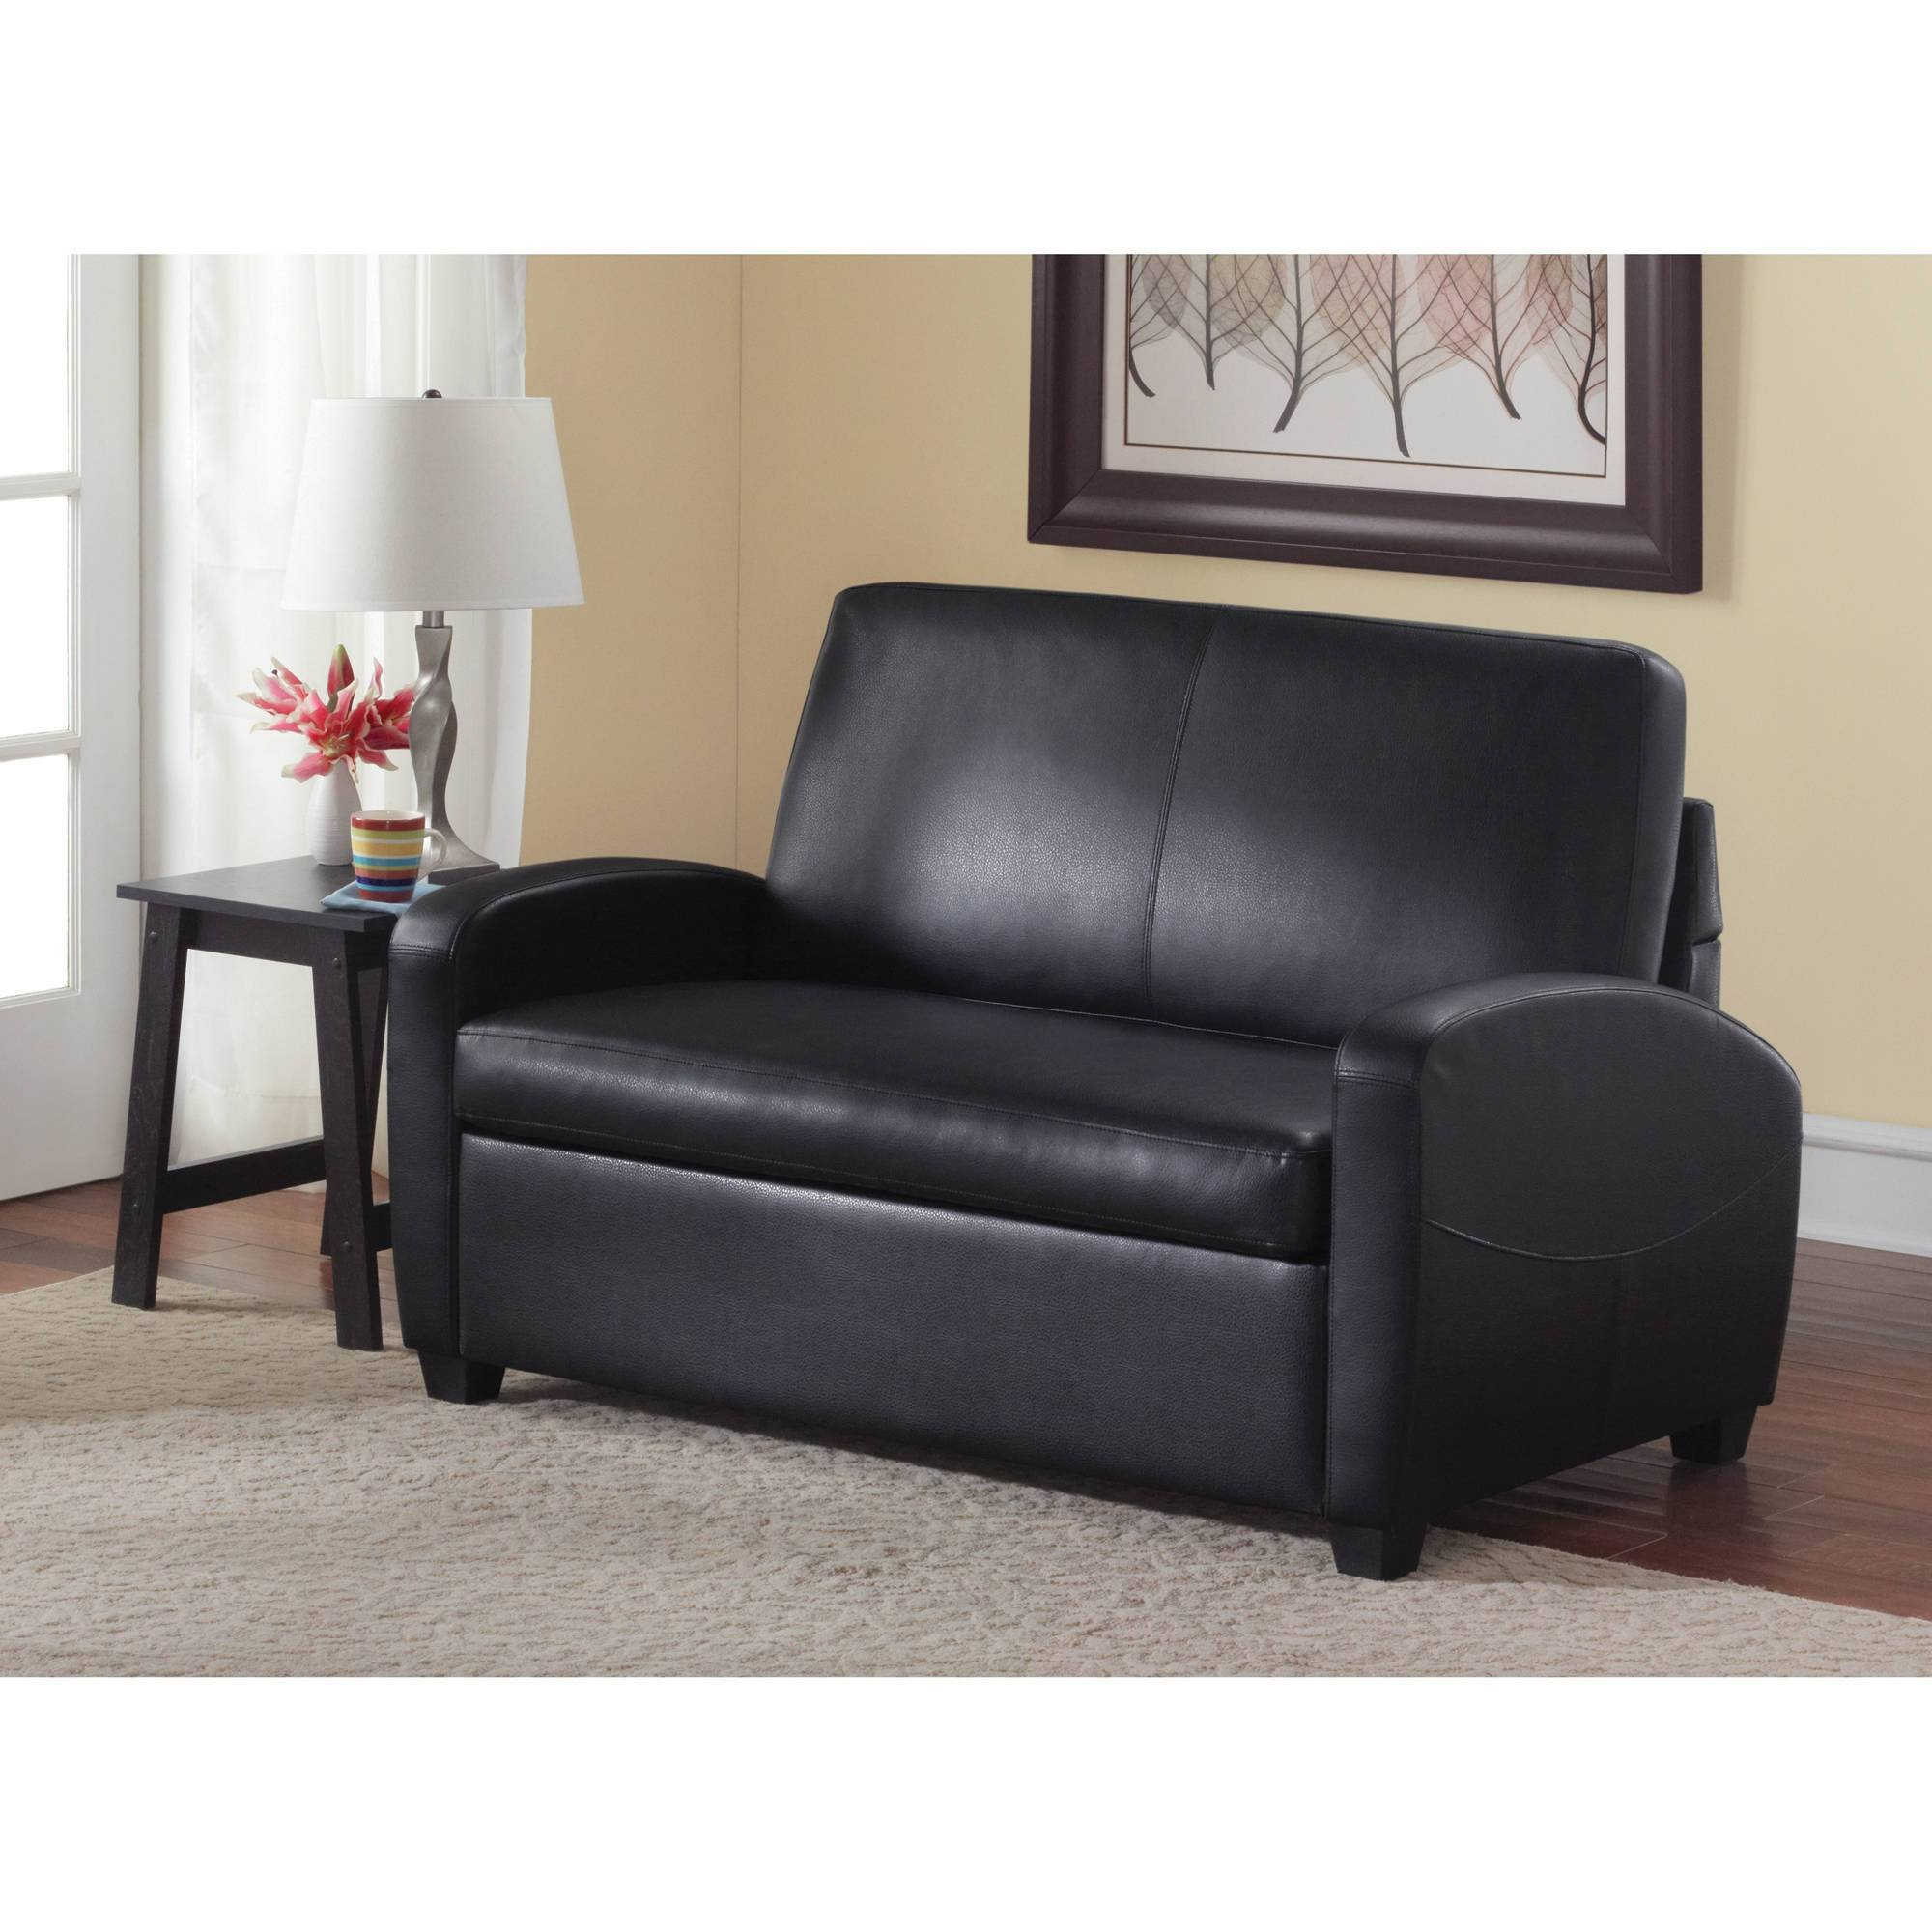 Furniture: Leather Futon Walmart With Modern Look And Stylish With City Sofa Beds (View 11 of 30)